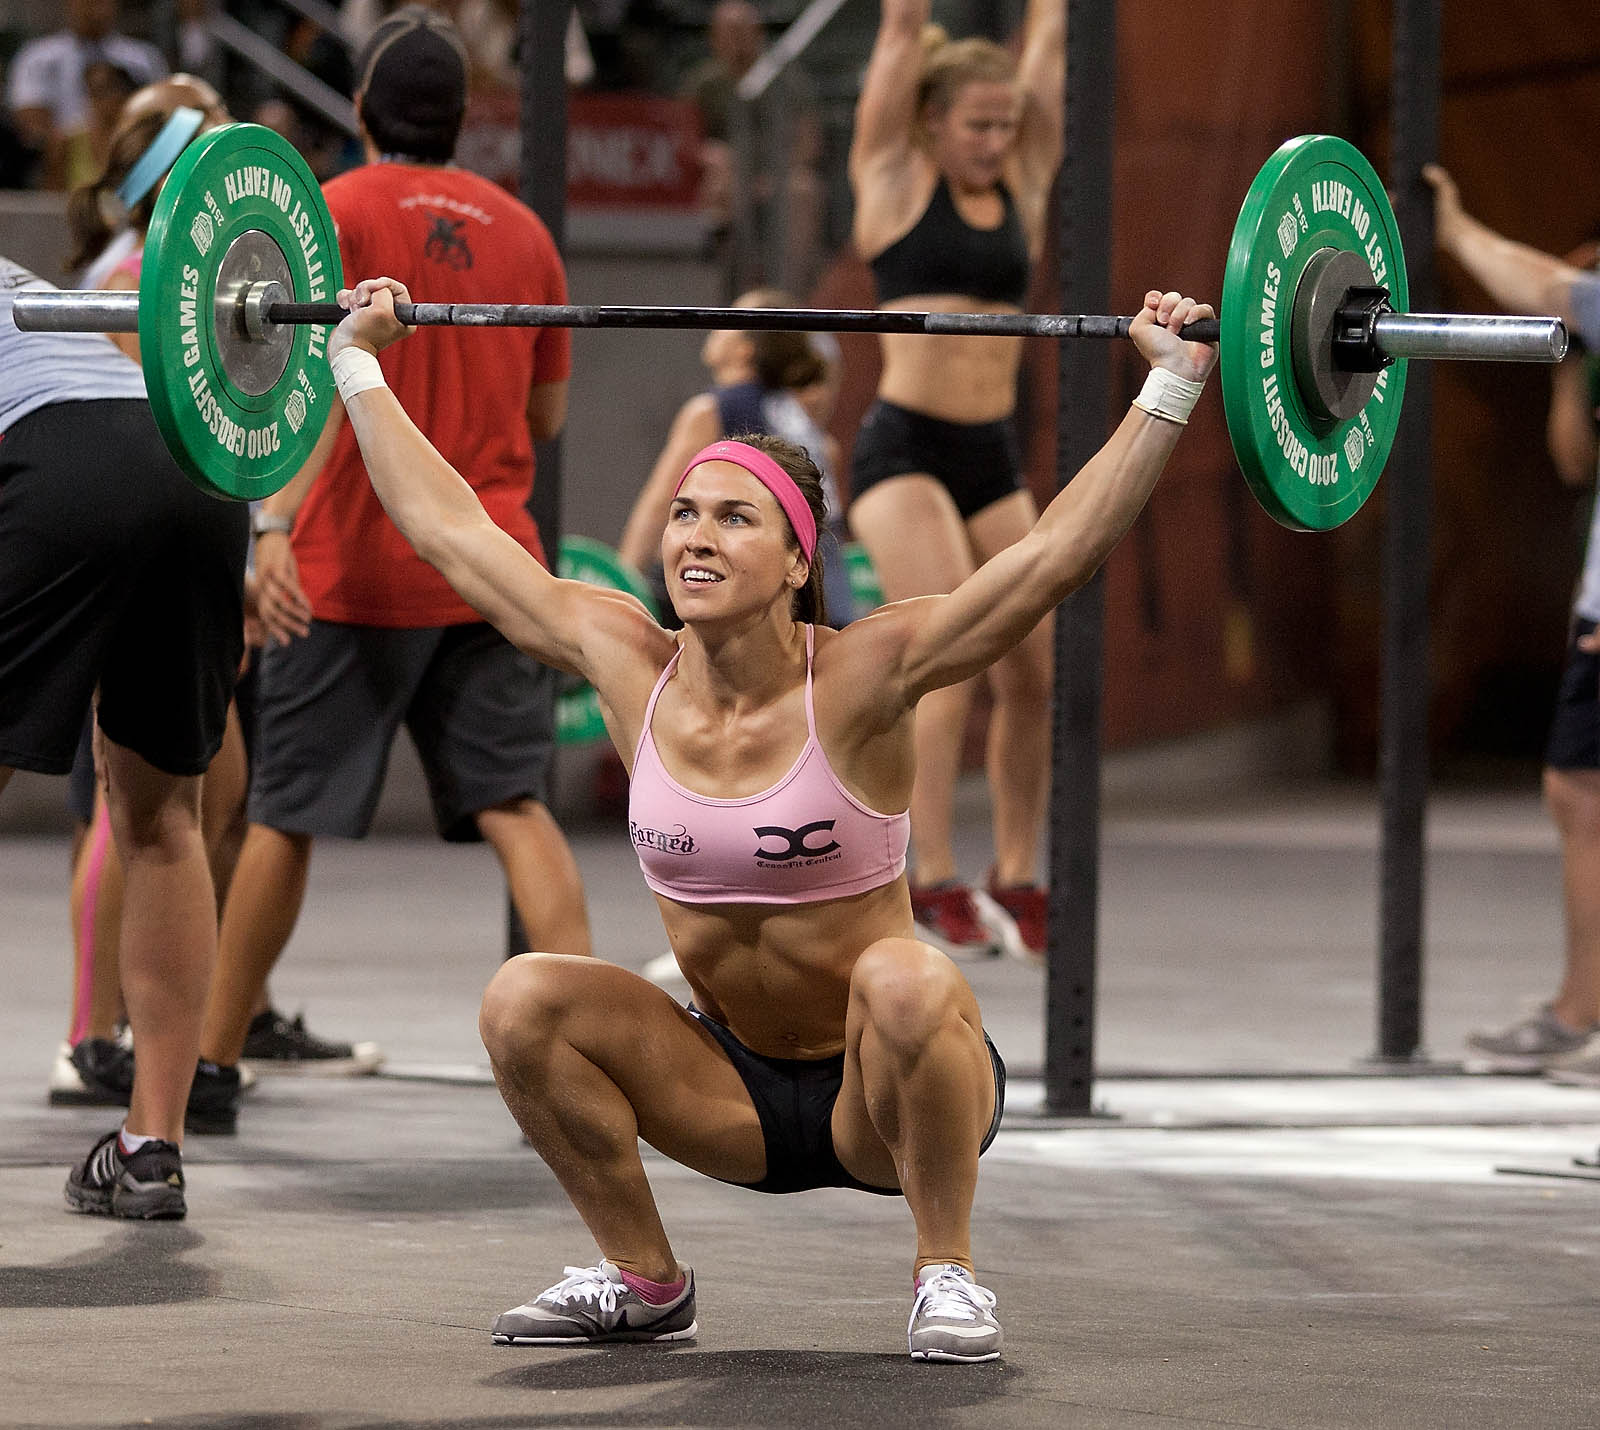 elite crossfitters on steroids